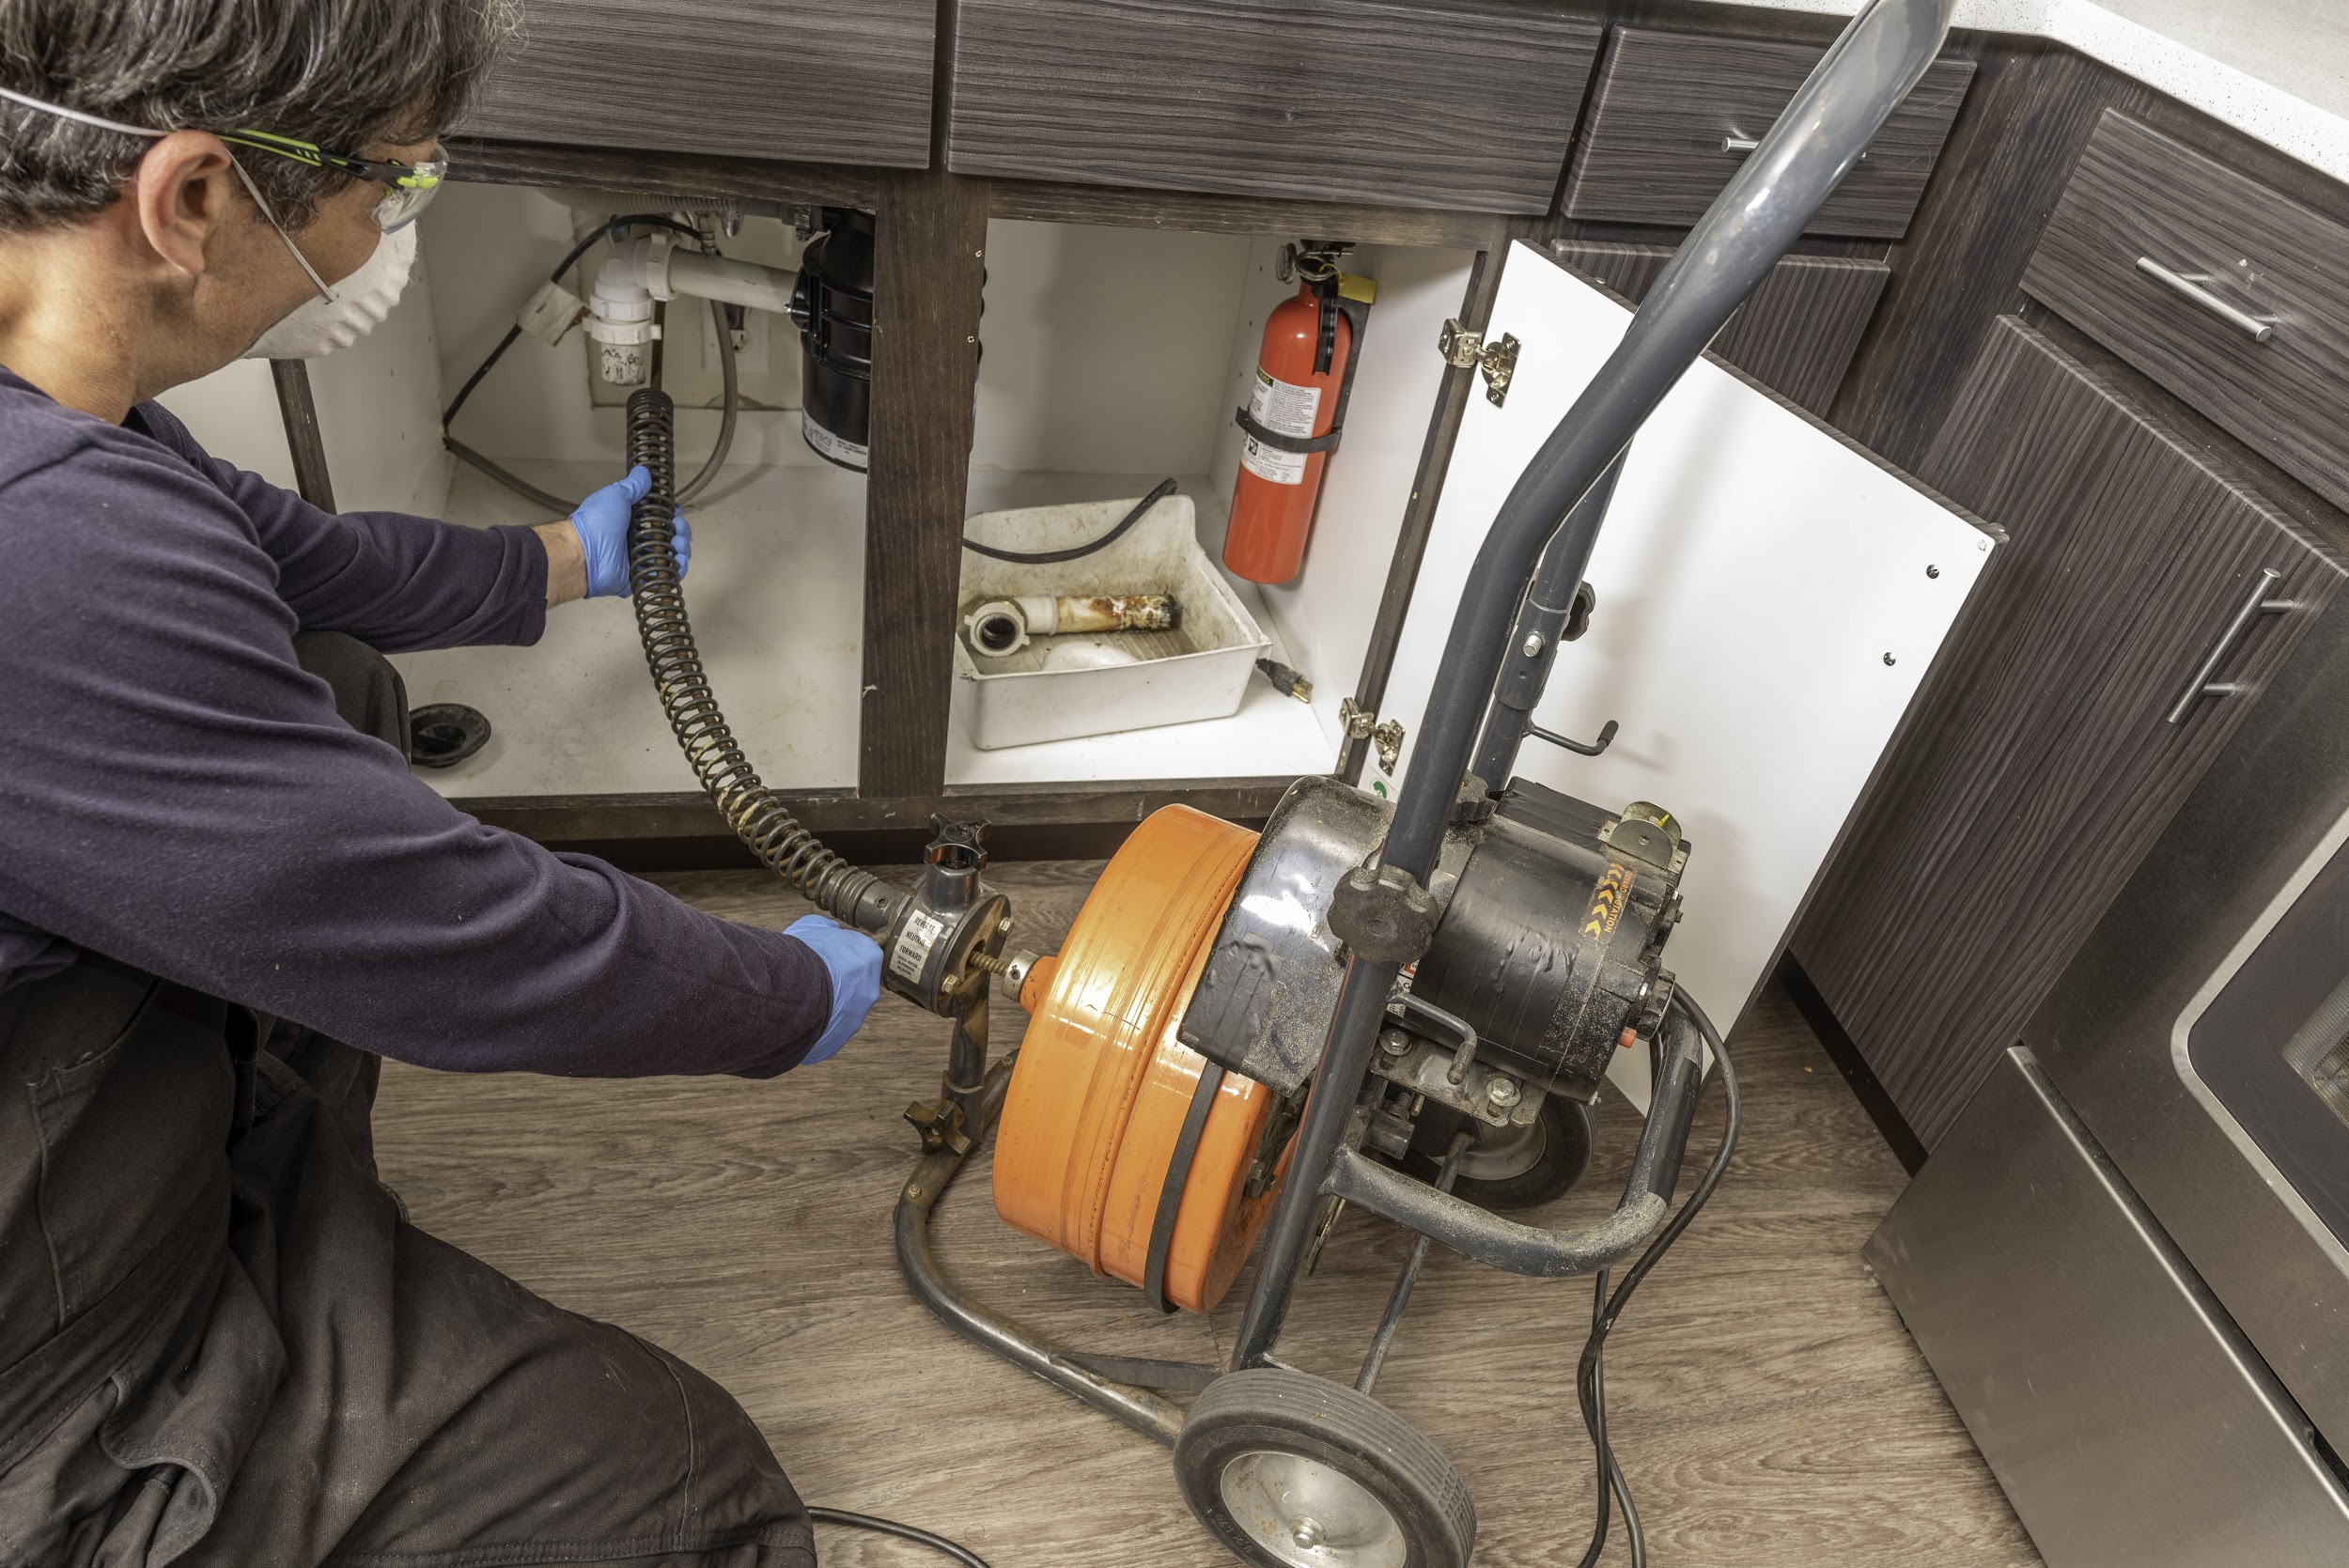 Professional drain cleaning with a self guiding electric snake